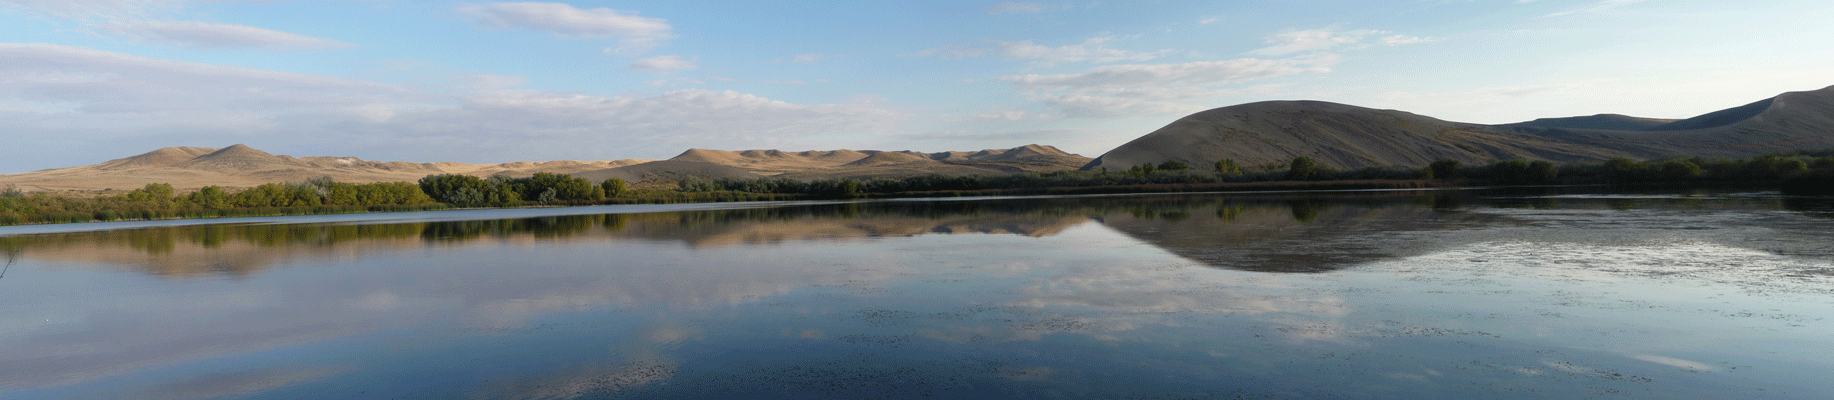 Bruneau Dunes Lake Panorama